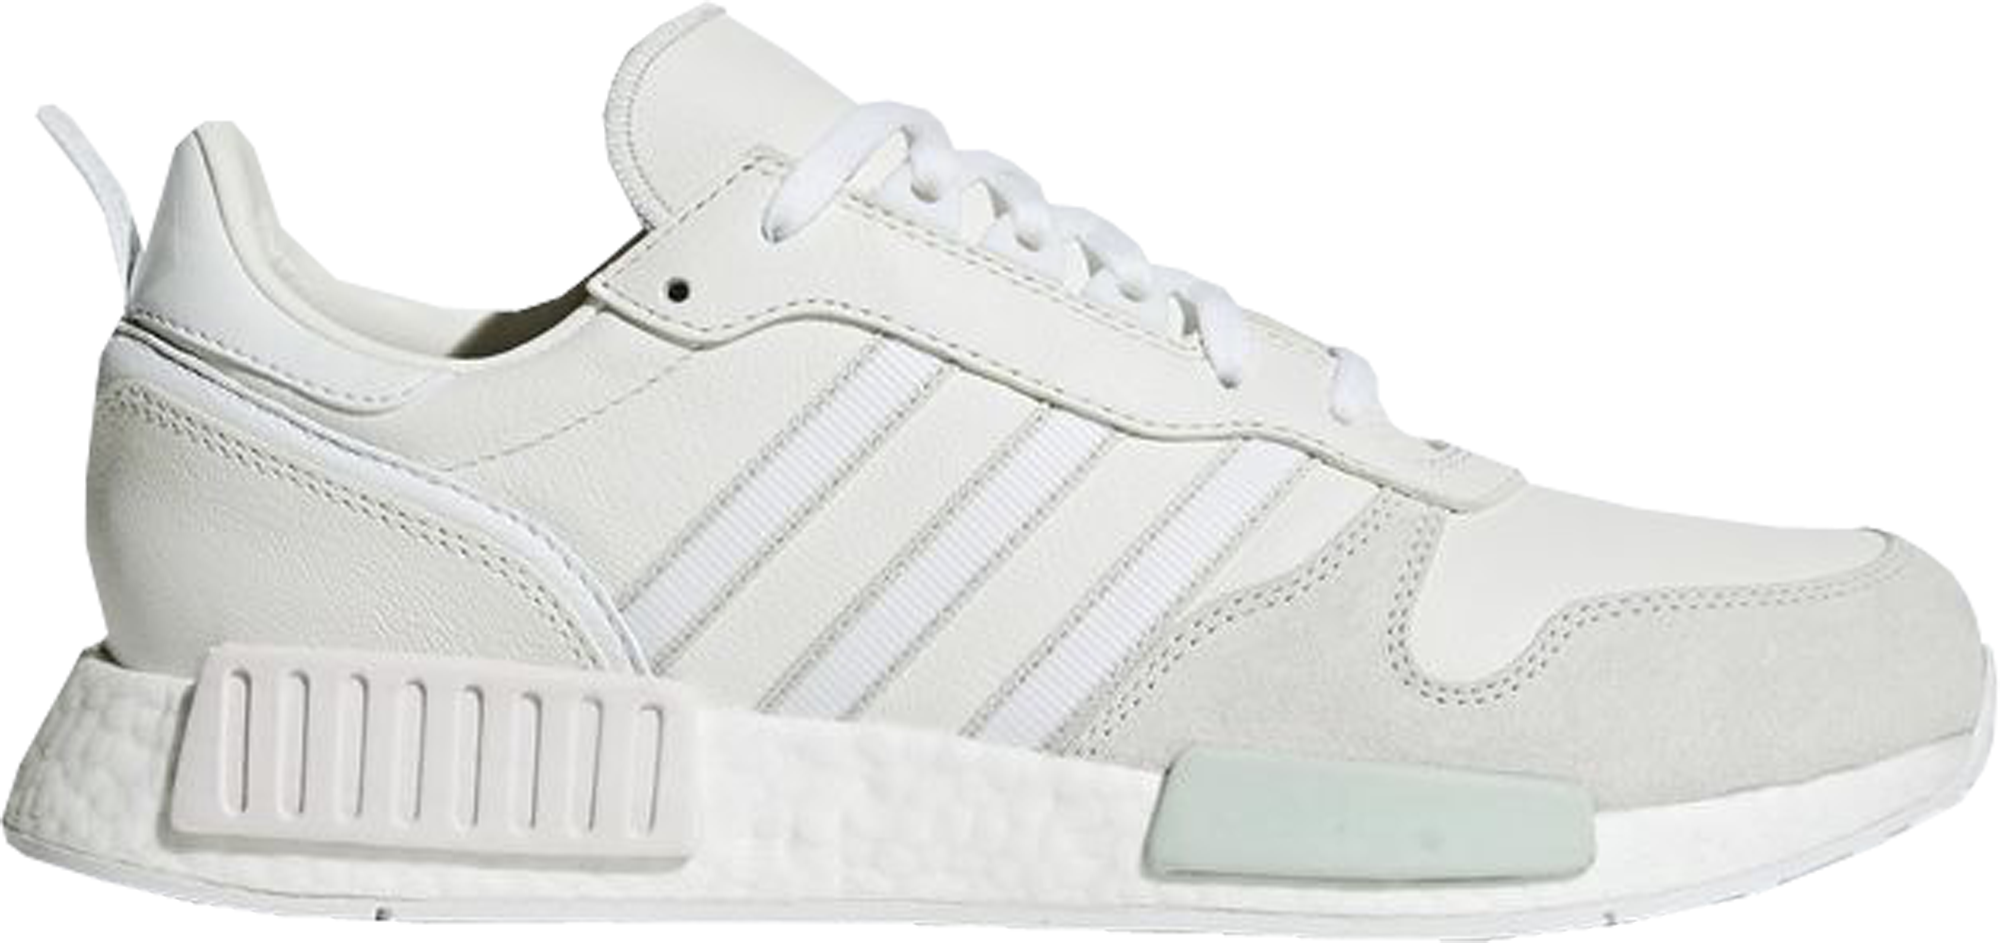 adidas Rising Star x R1 Never Made Pack Triple White